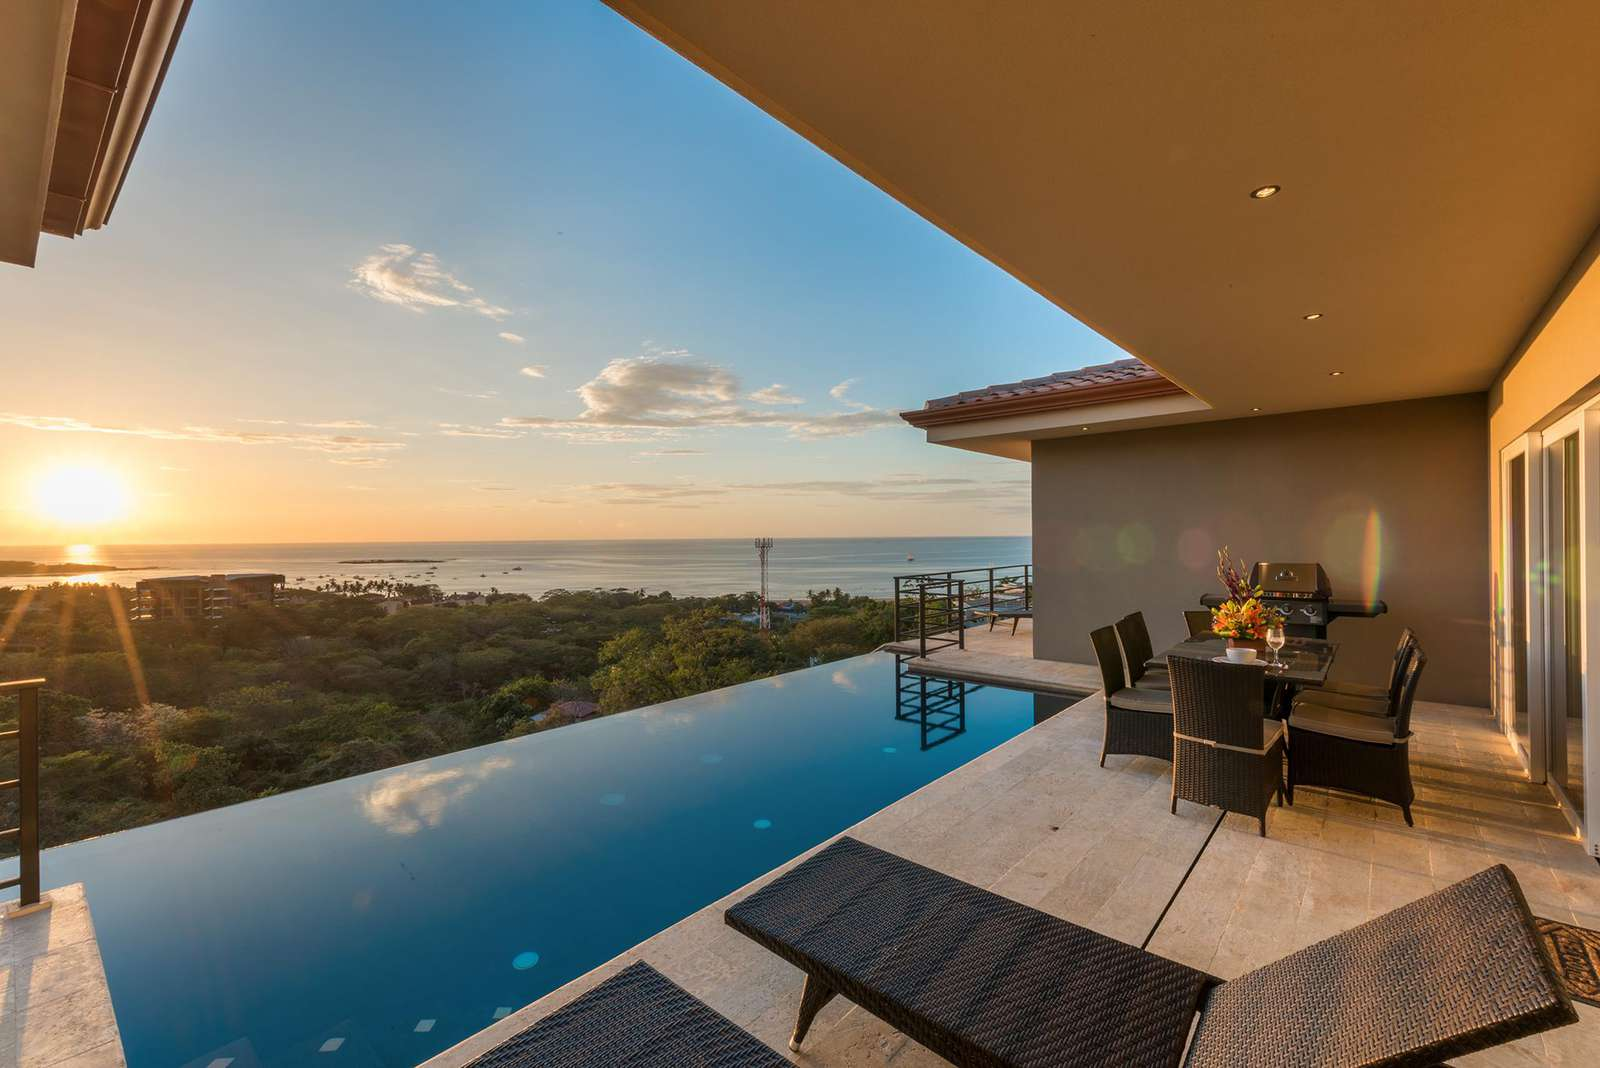 Casa de la perla, amazing 180 views and best sunsets